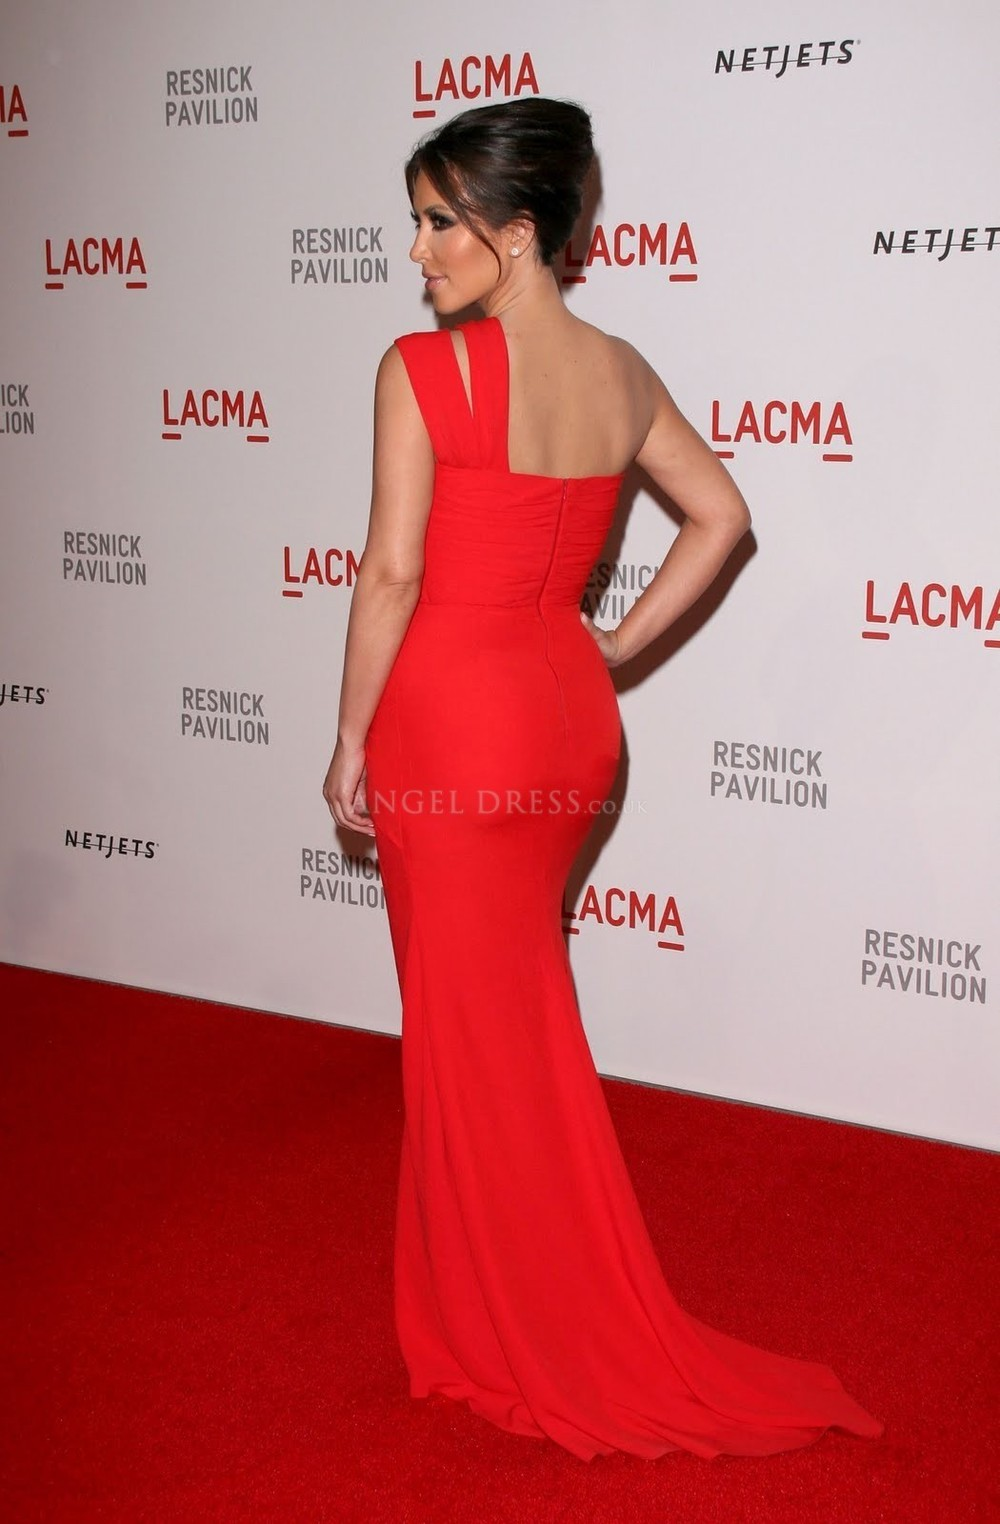 one-shoulder-chiffon-sheath-column-floor-length-kim-kardashian-at-lacma-gala-red-carpet-dresses_120326102_03.jpg